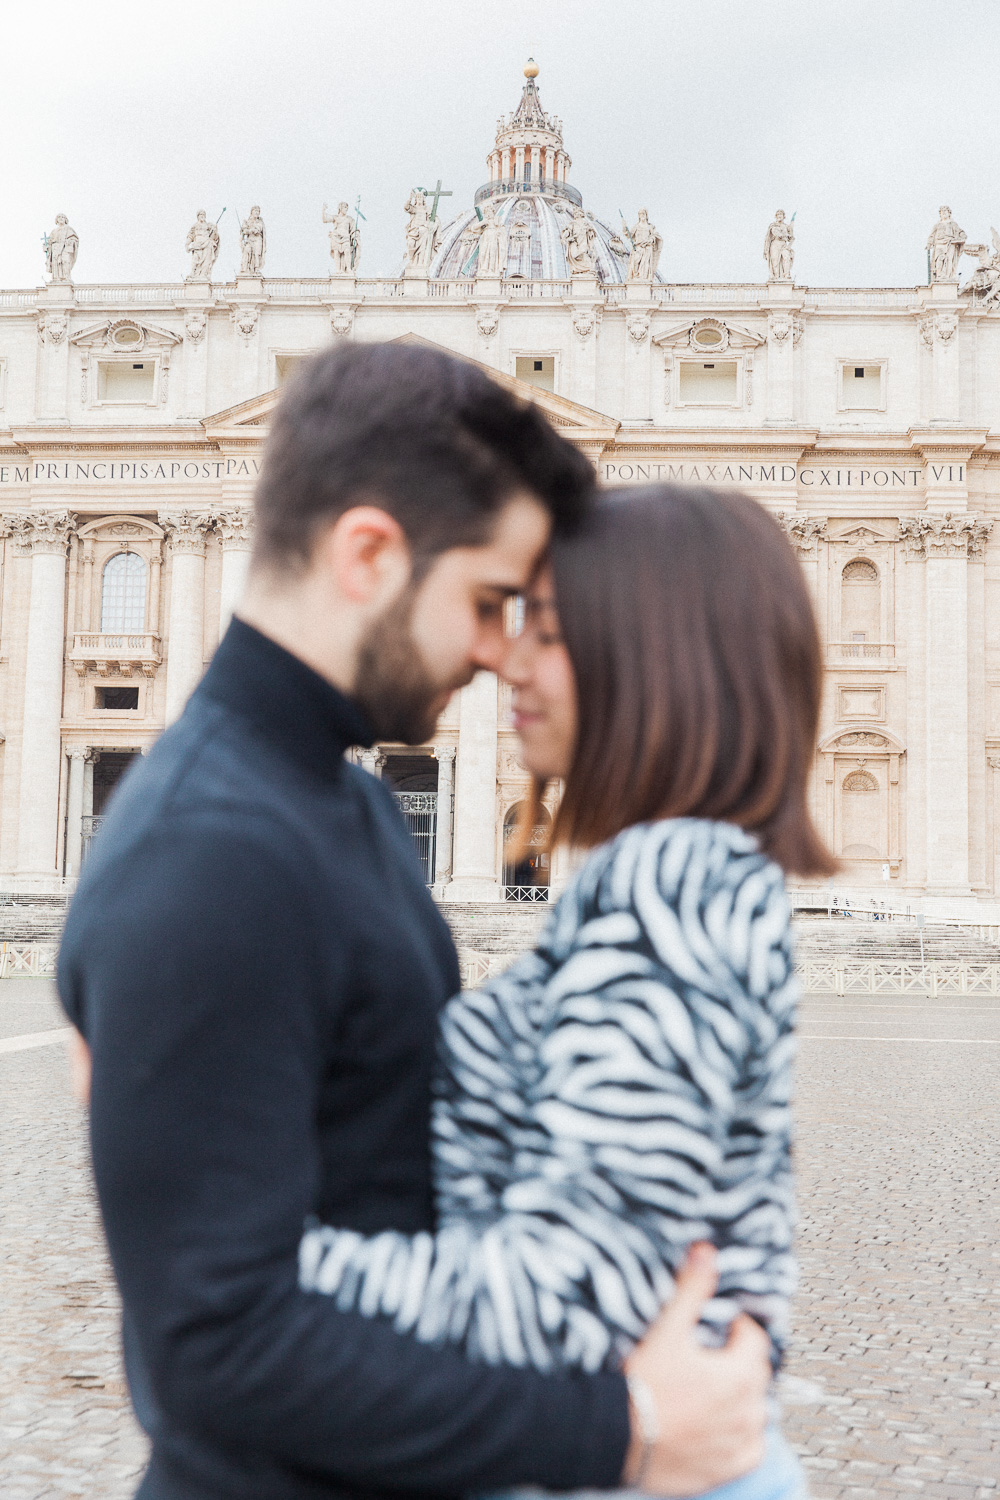 Couple hugging in front of Sait Peter's Basilica in Rome, Italy